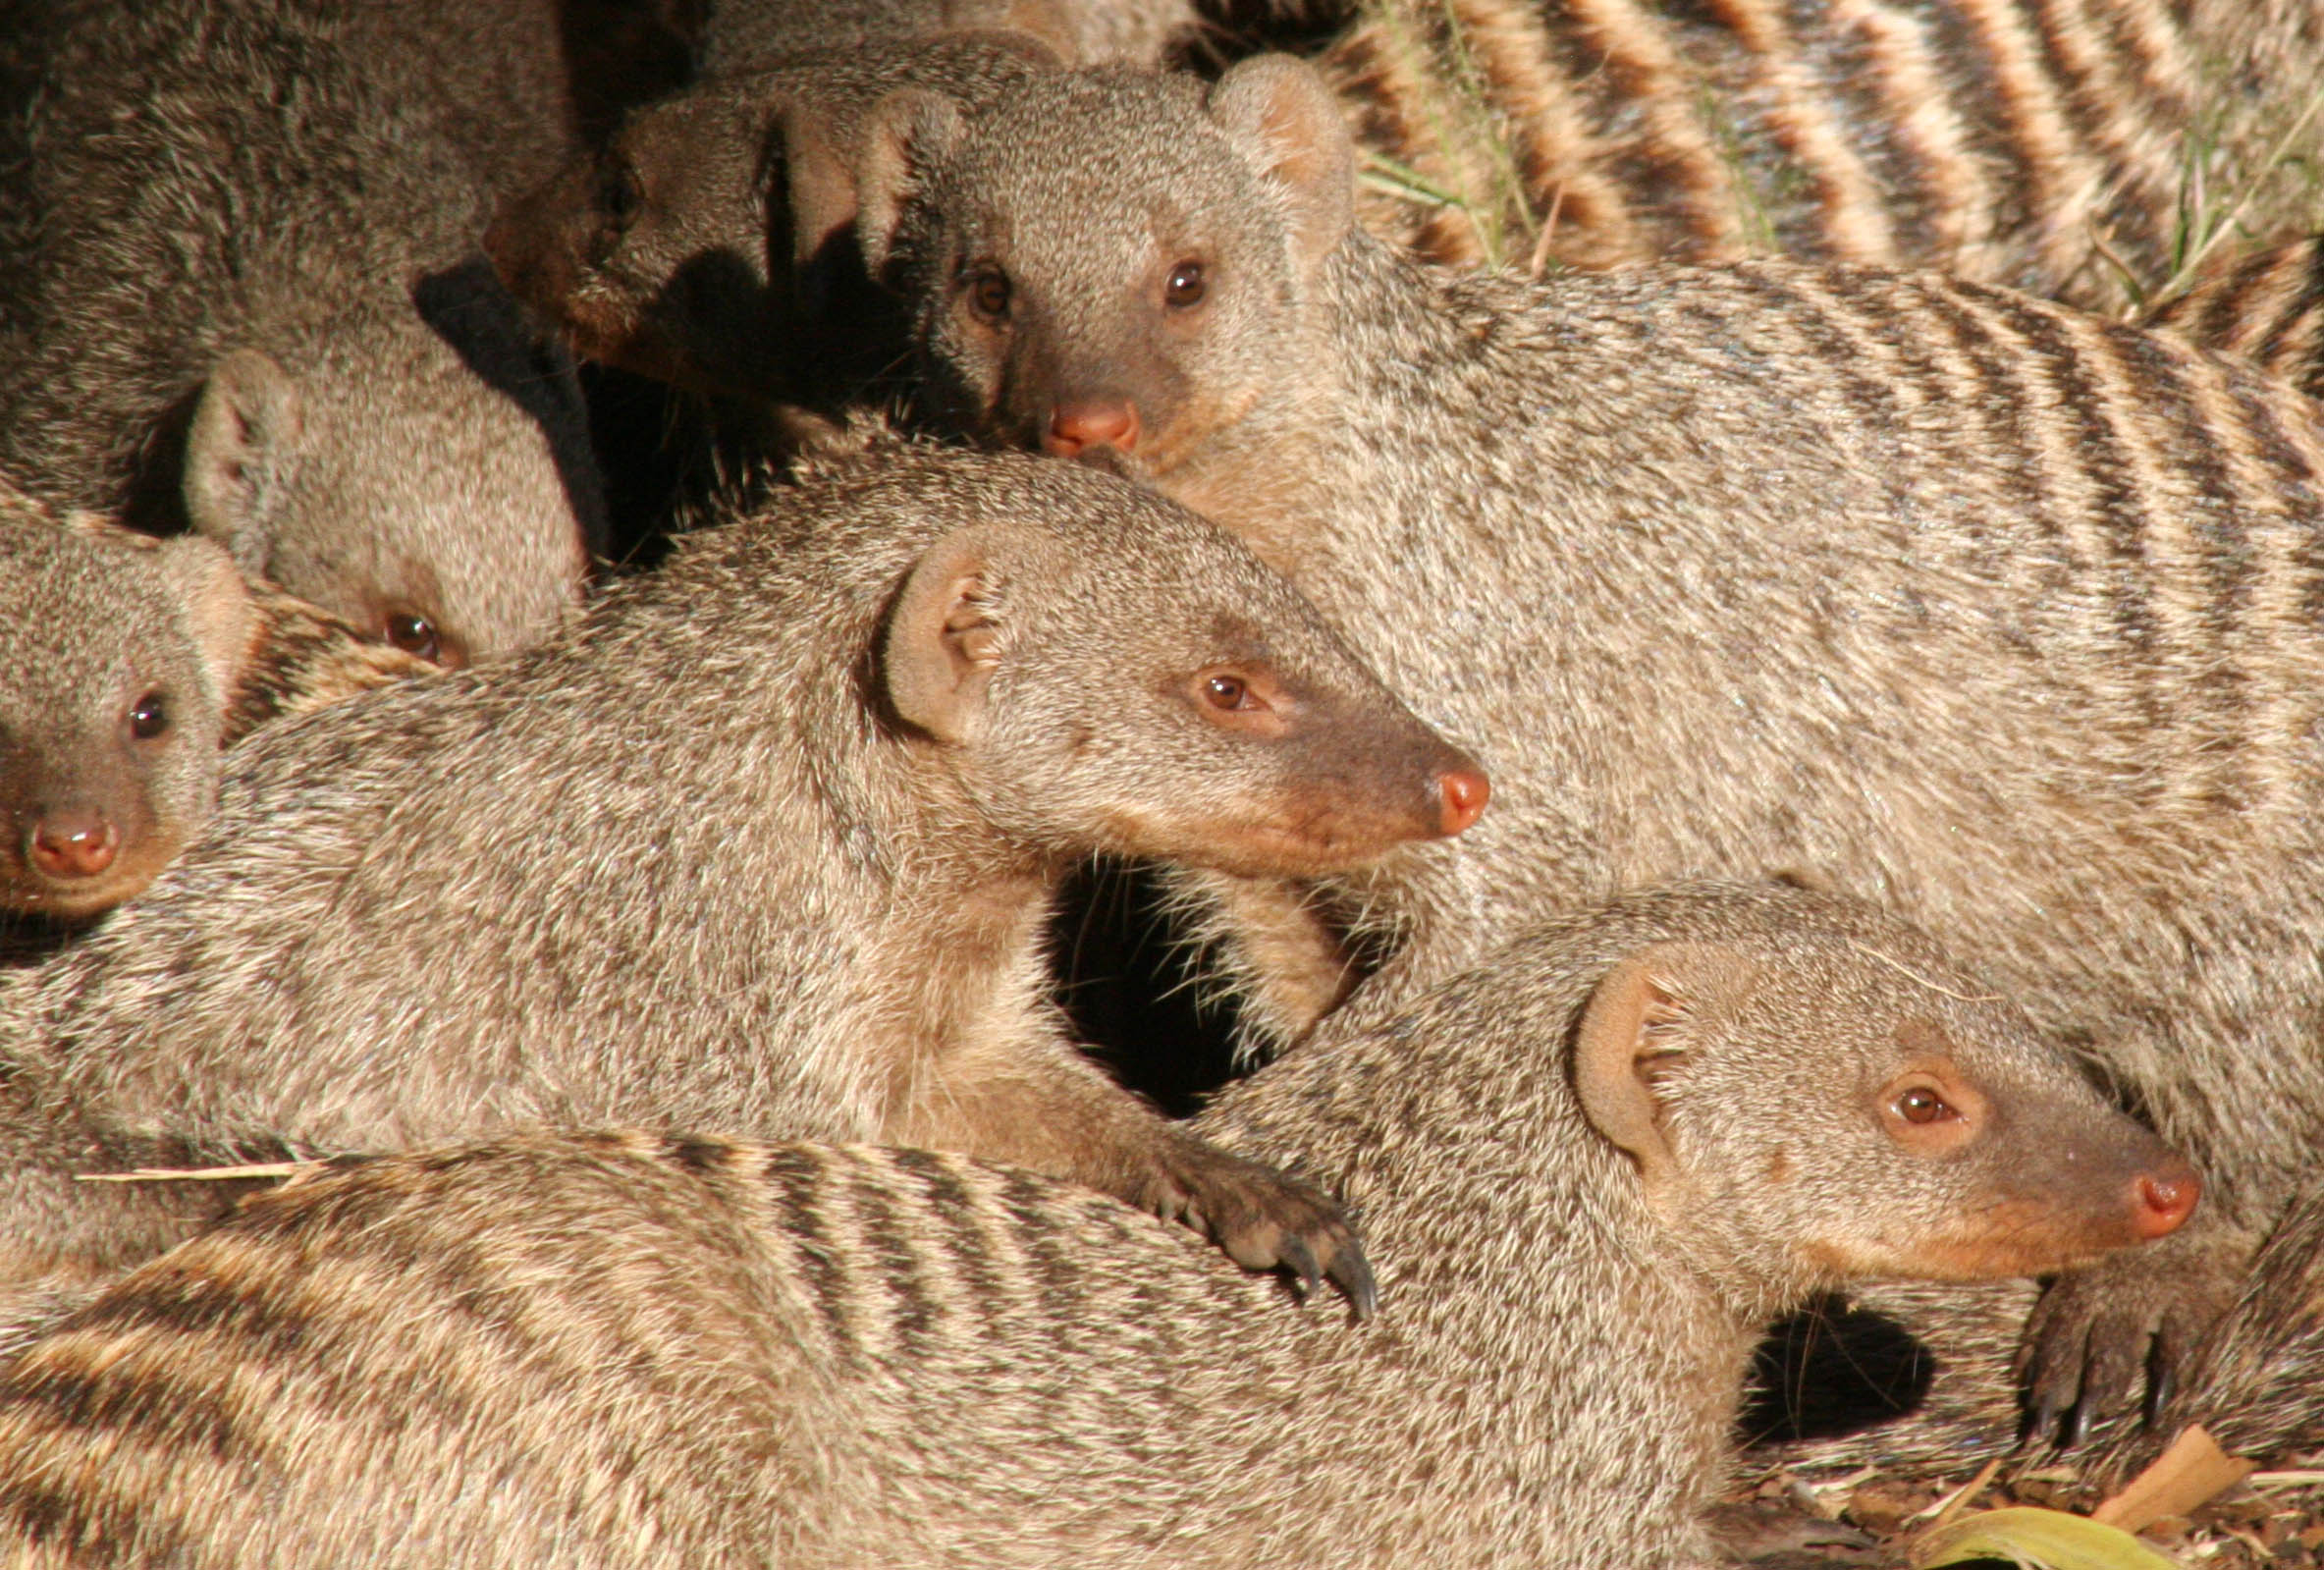 A number of banded mongoose